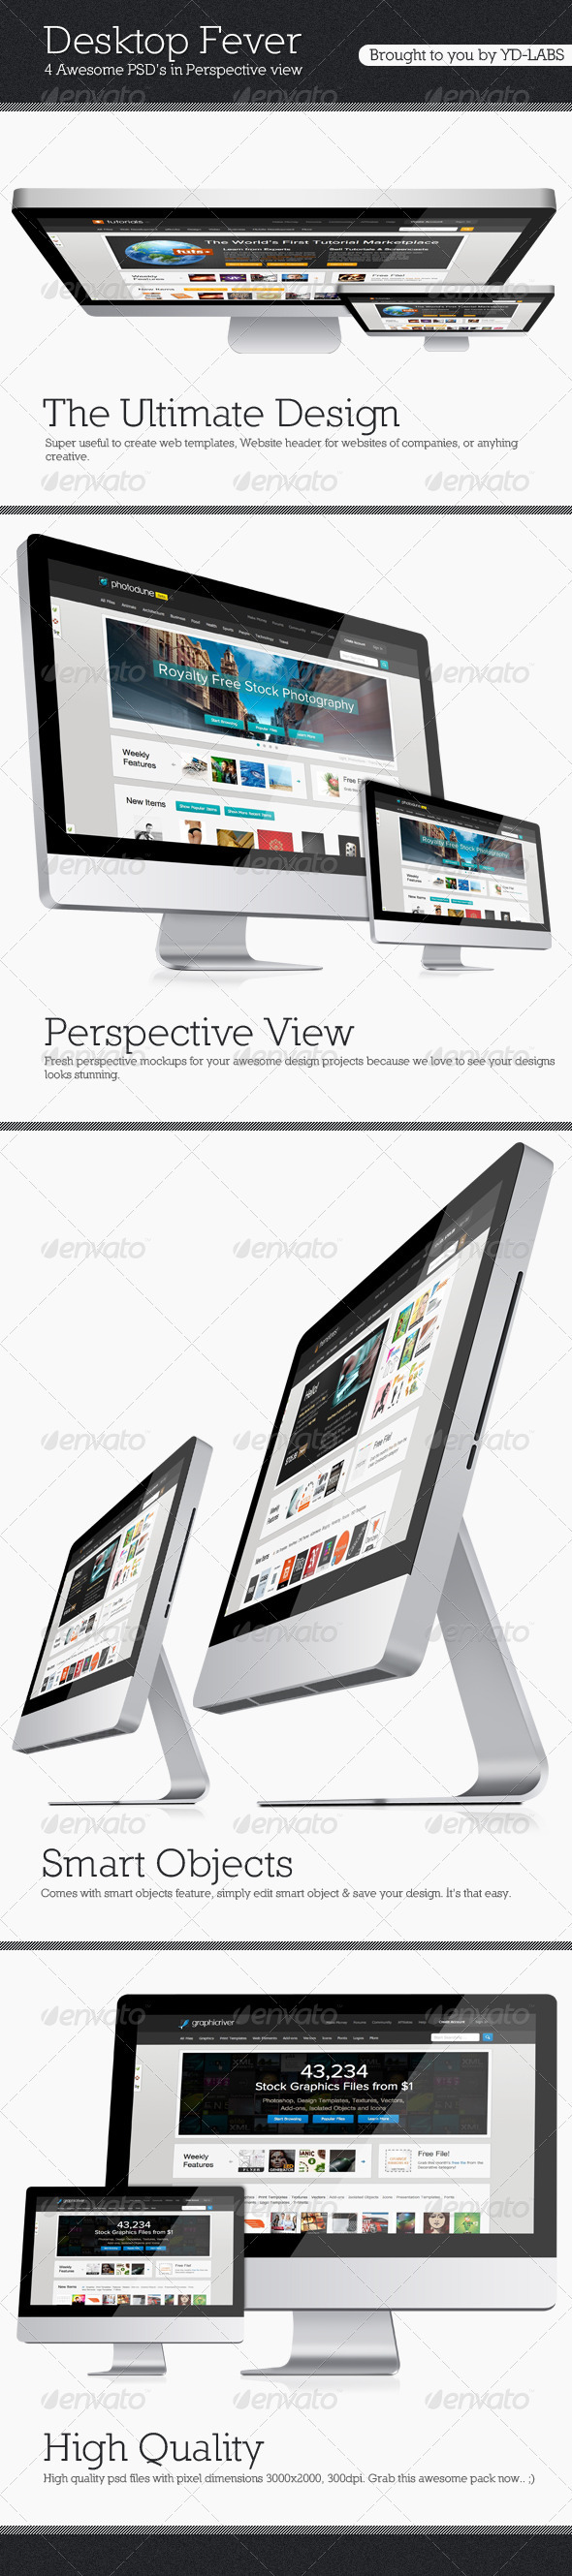 Desktop Fever Mockup Pack - Monitors Displays